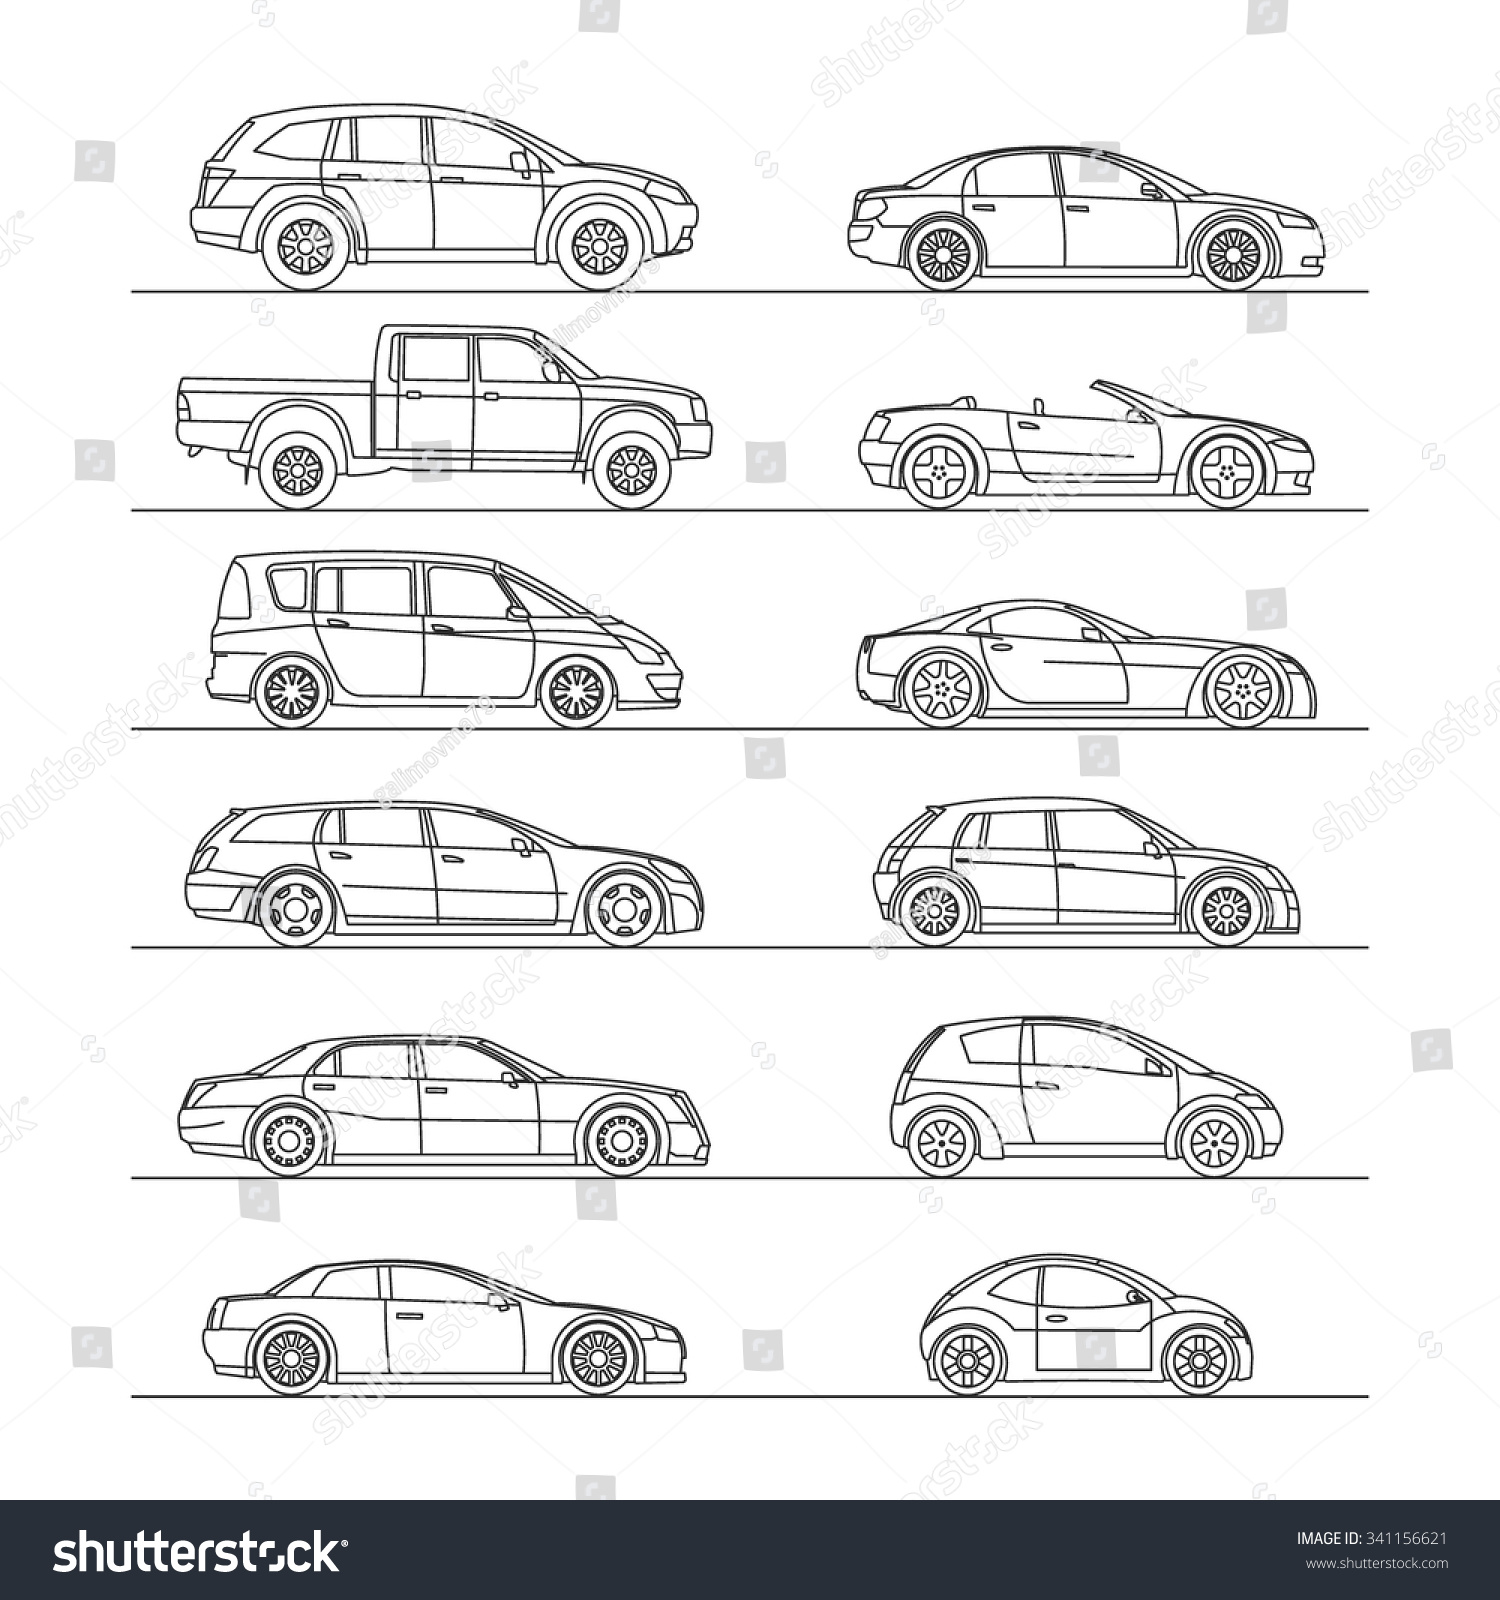 Vector Drawing Lines Html : Car icon set line draw vector illustration